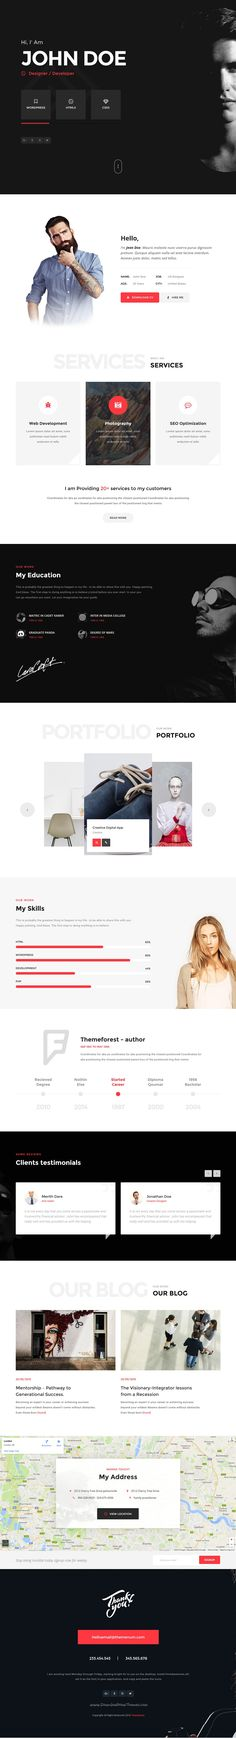 Narayana - One Page HTML5 Responsive Template Template for - resume portfolio template